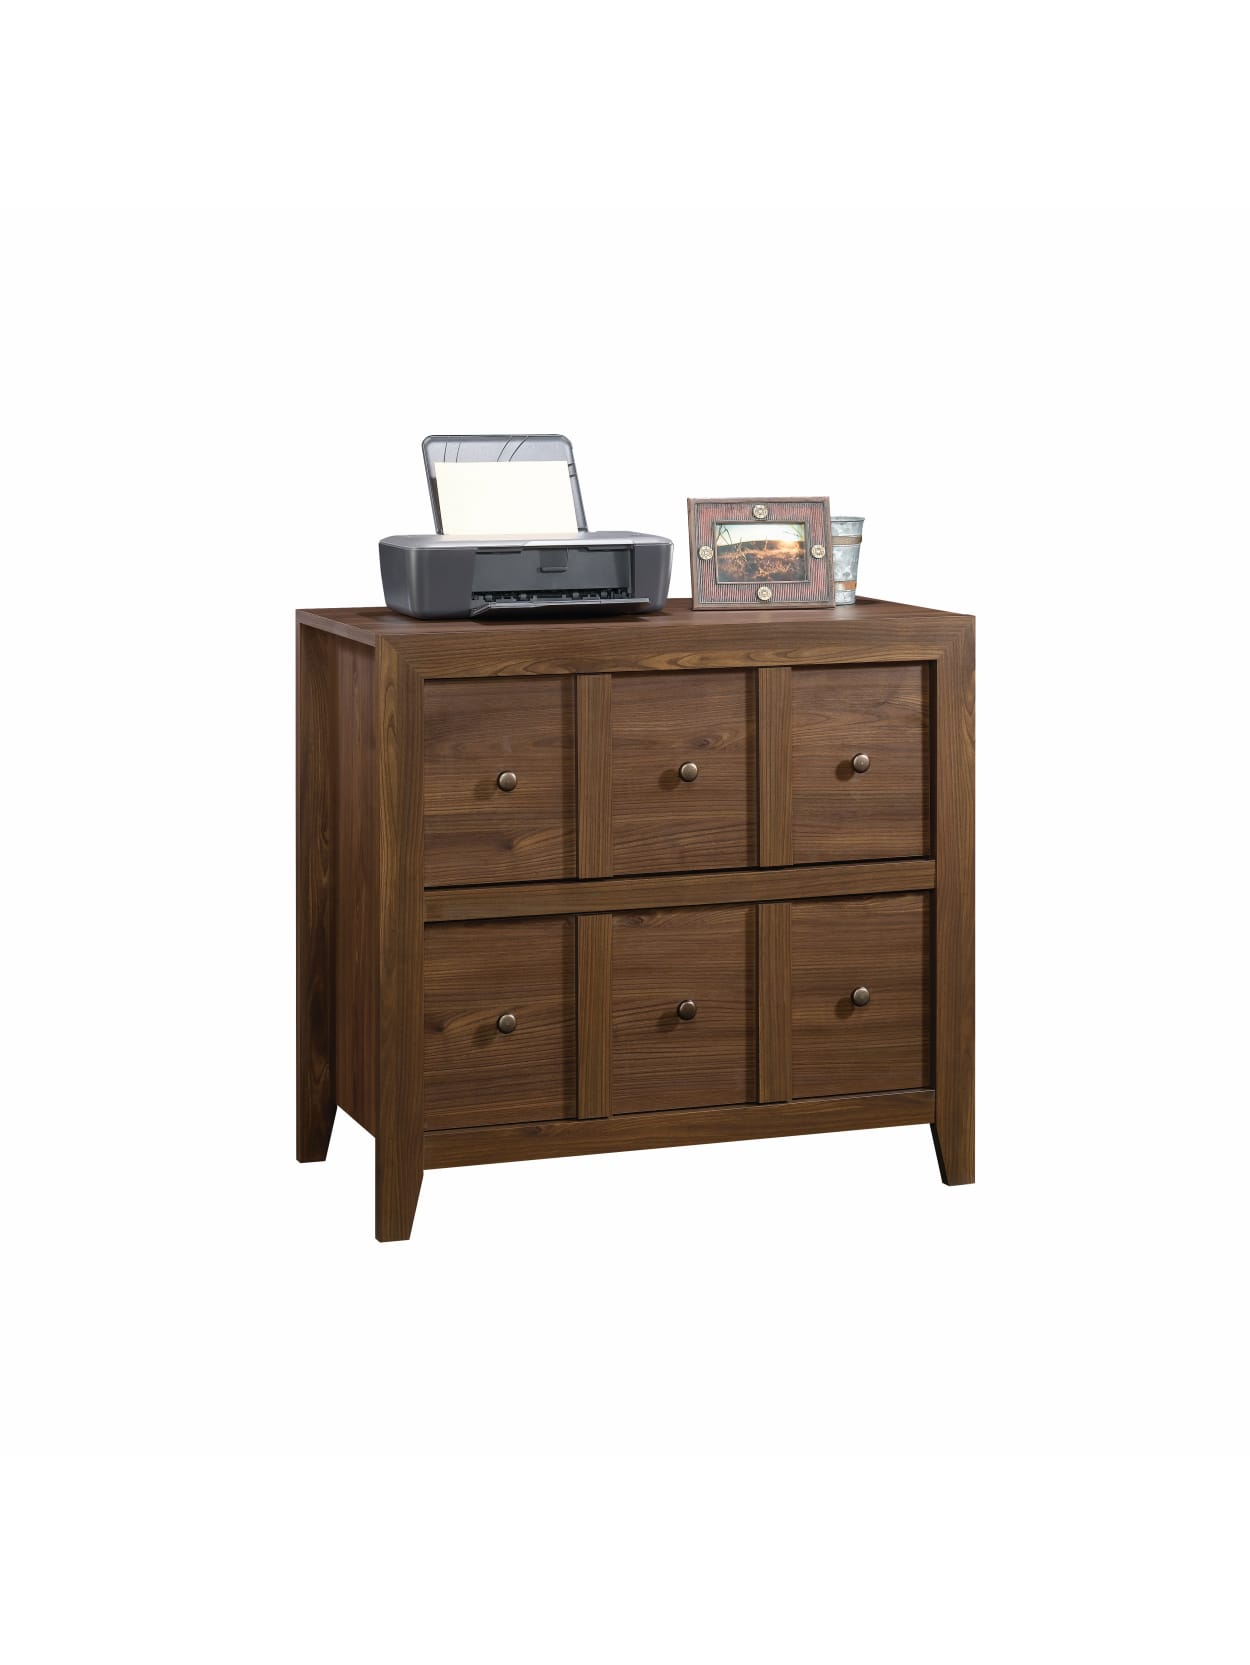 Sauder Anywhere Solutions Filing Cabinet 34 Drawers 34 134 H x 34